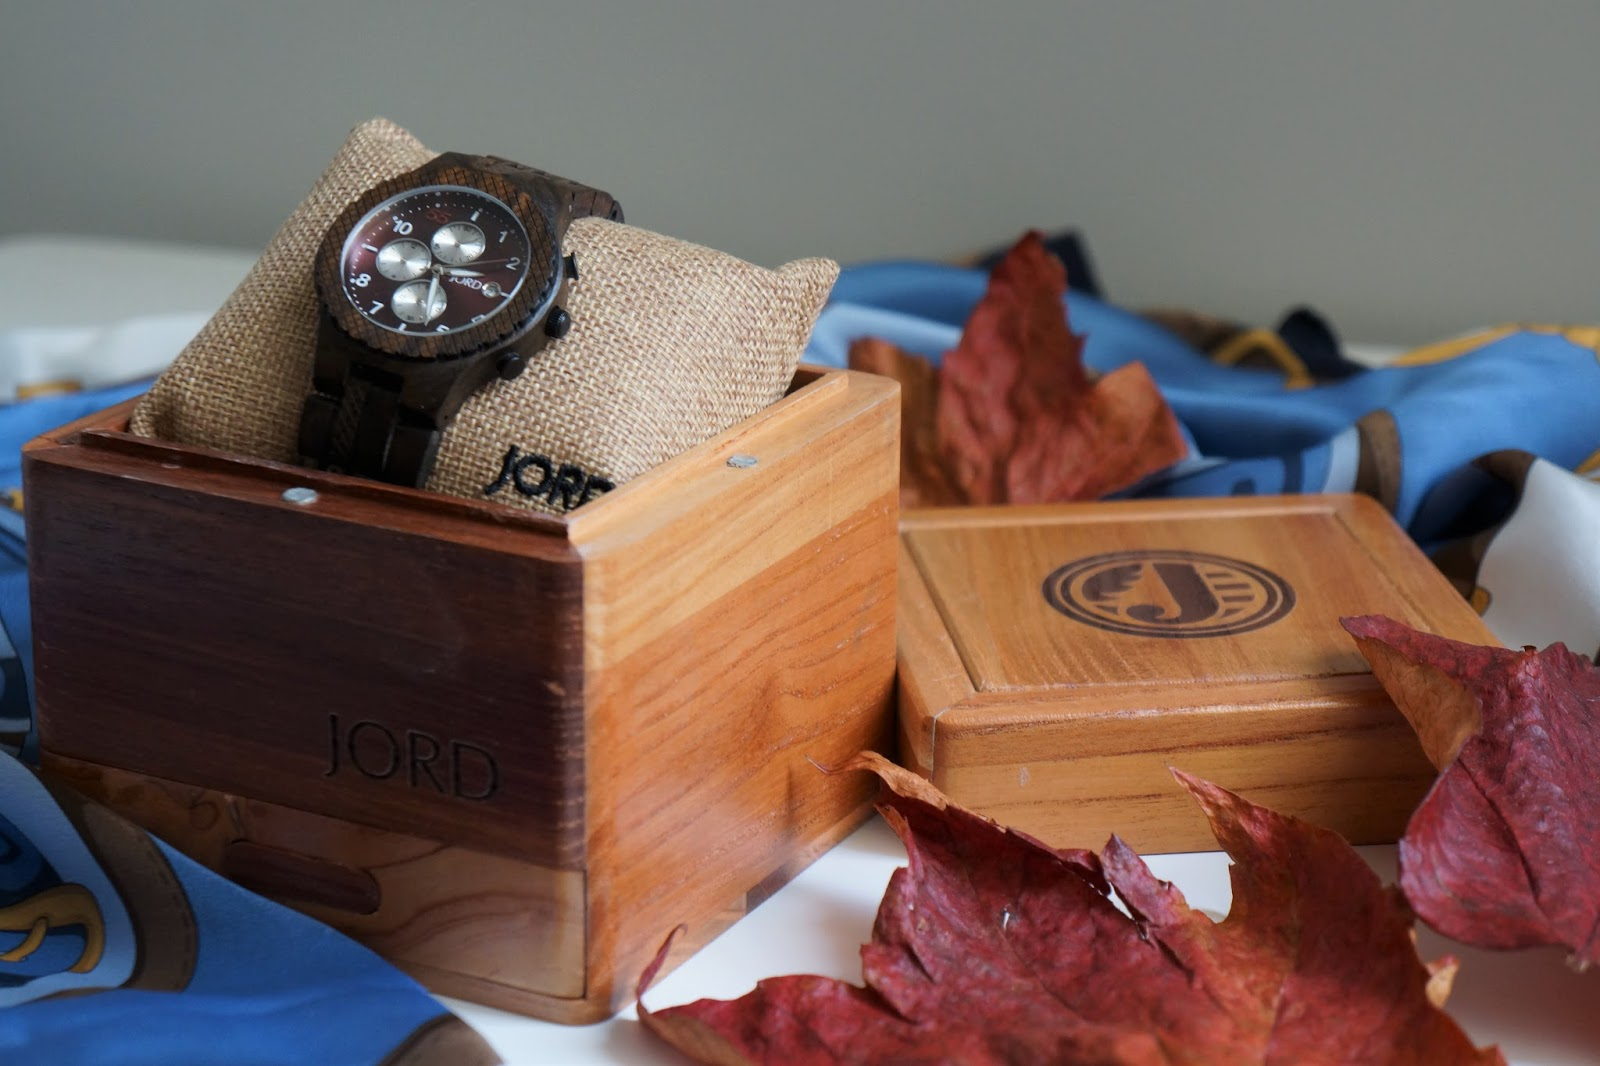 JORD men's wooden watch in a wooden gift box